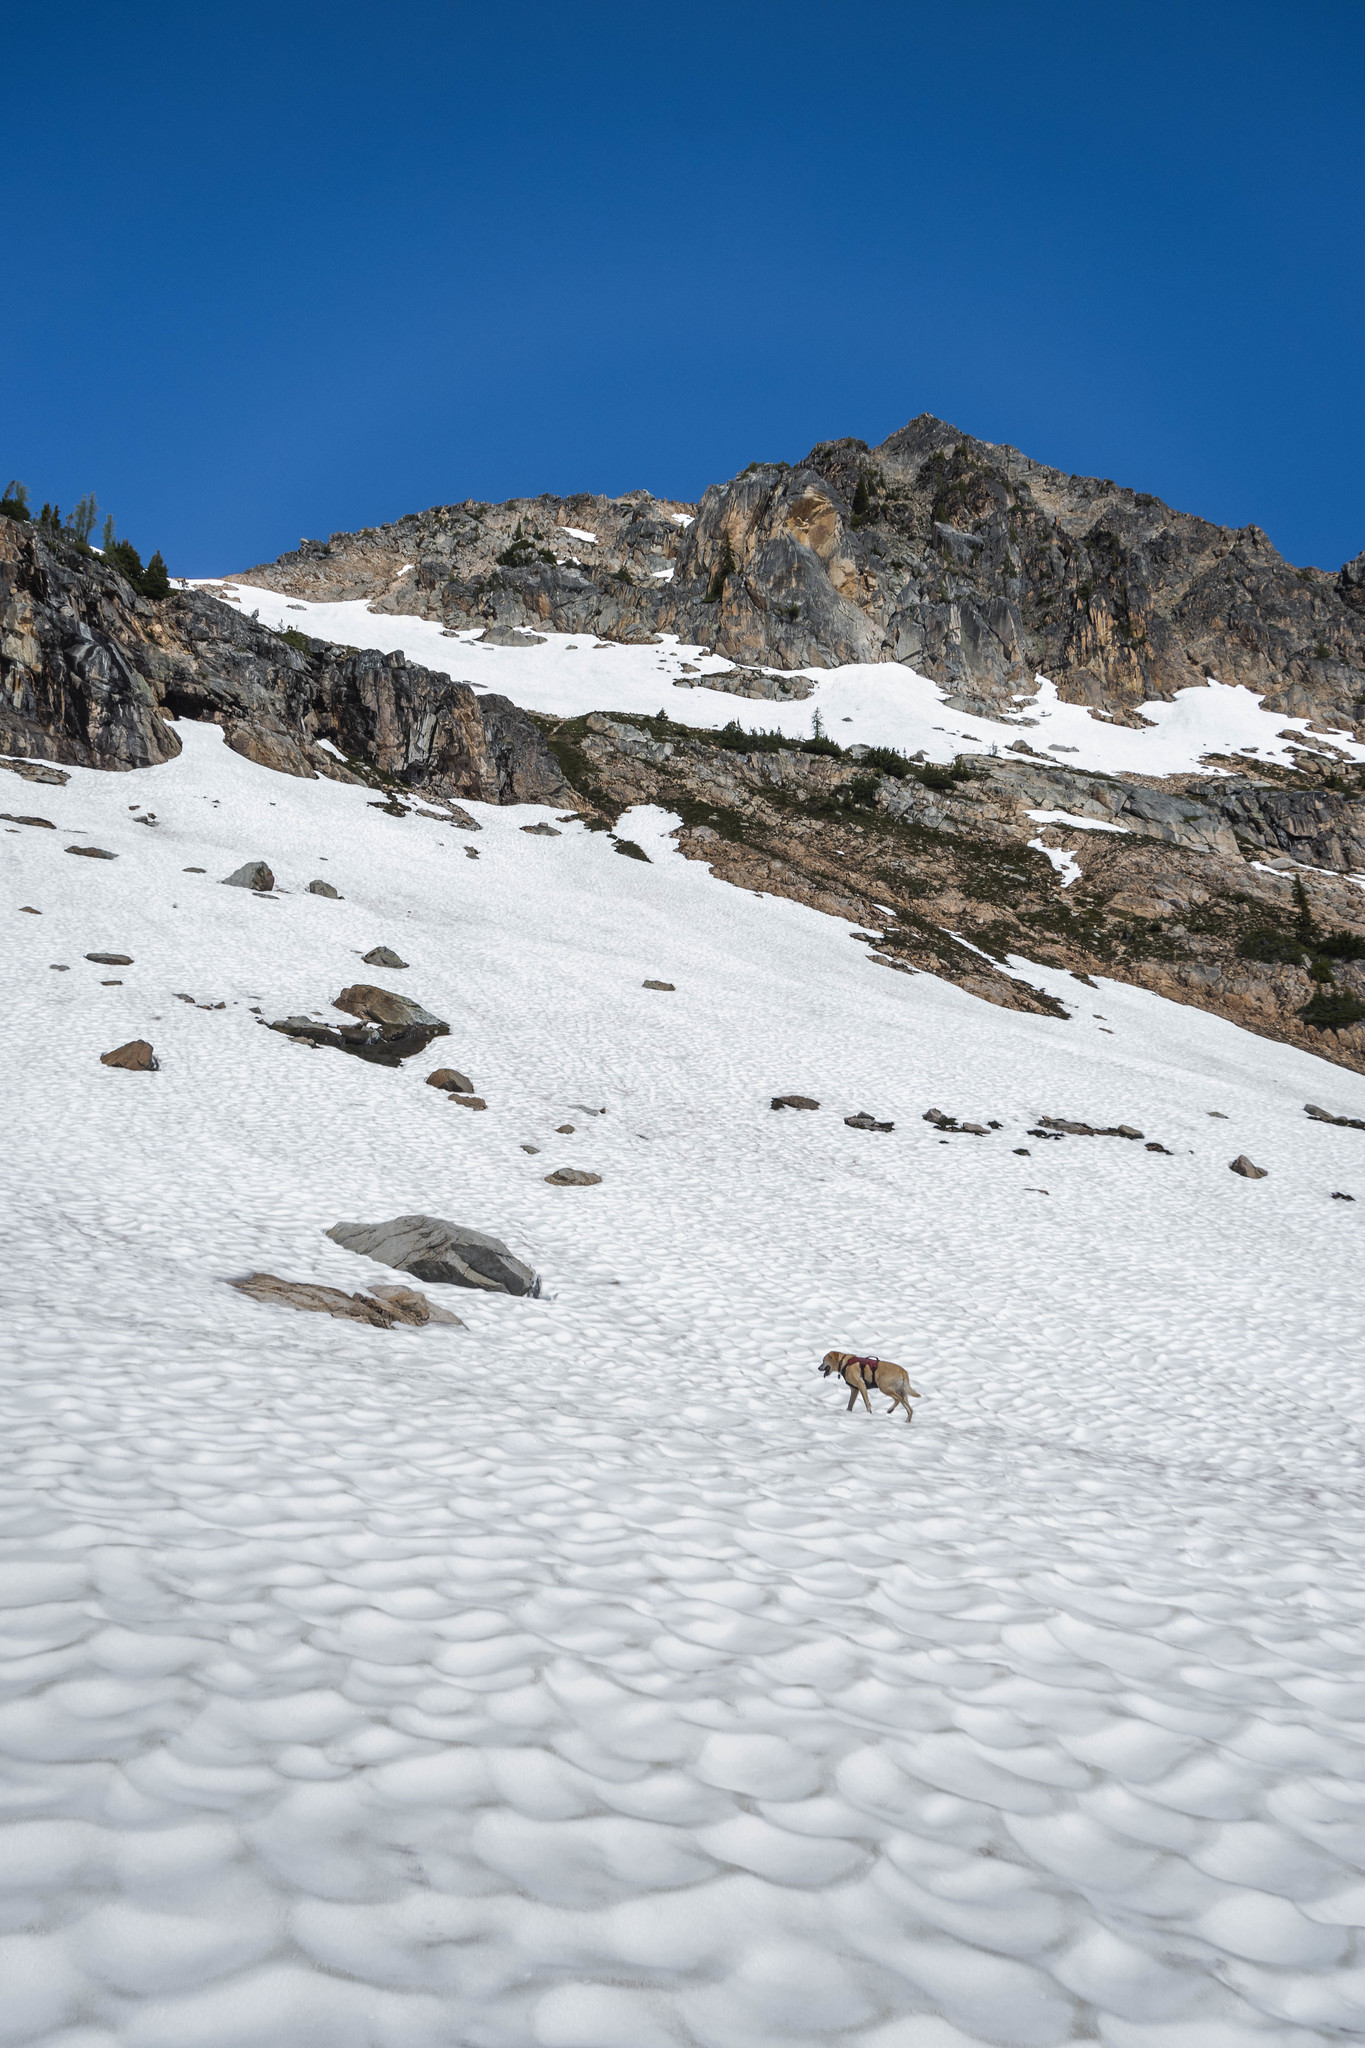 Aiming for the upper snowfield